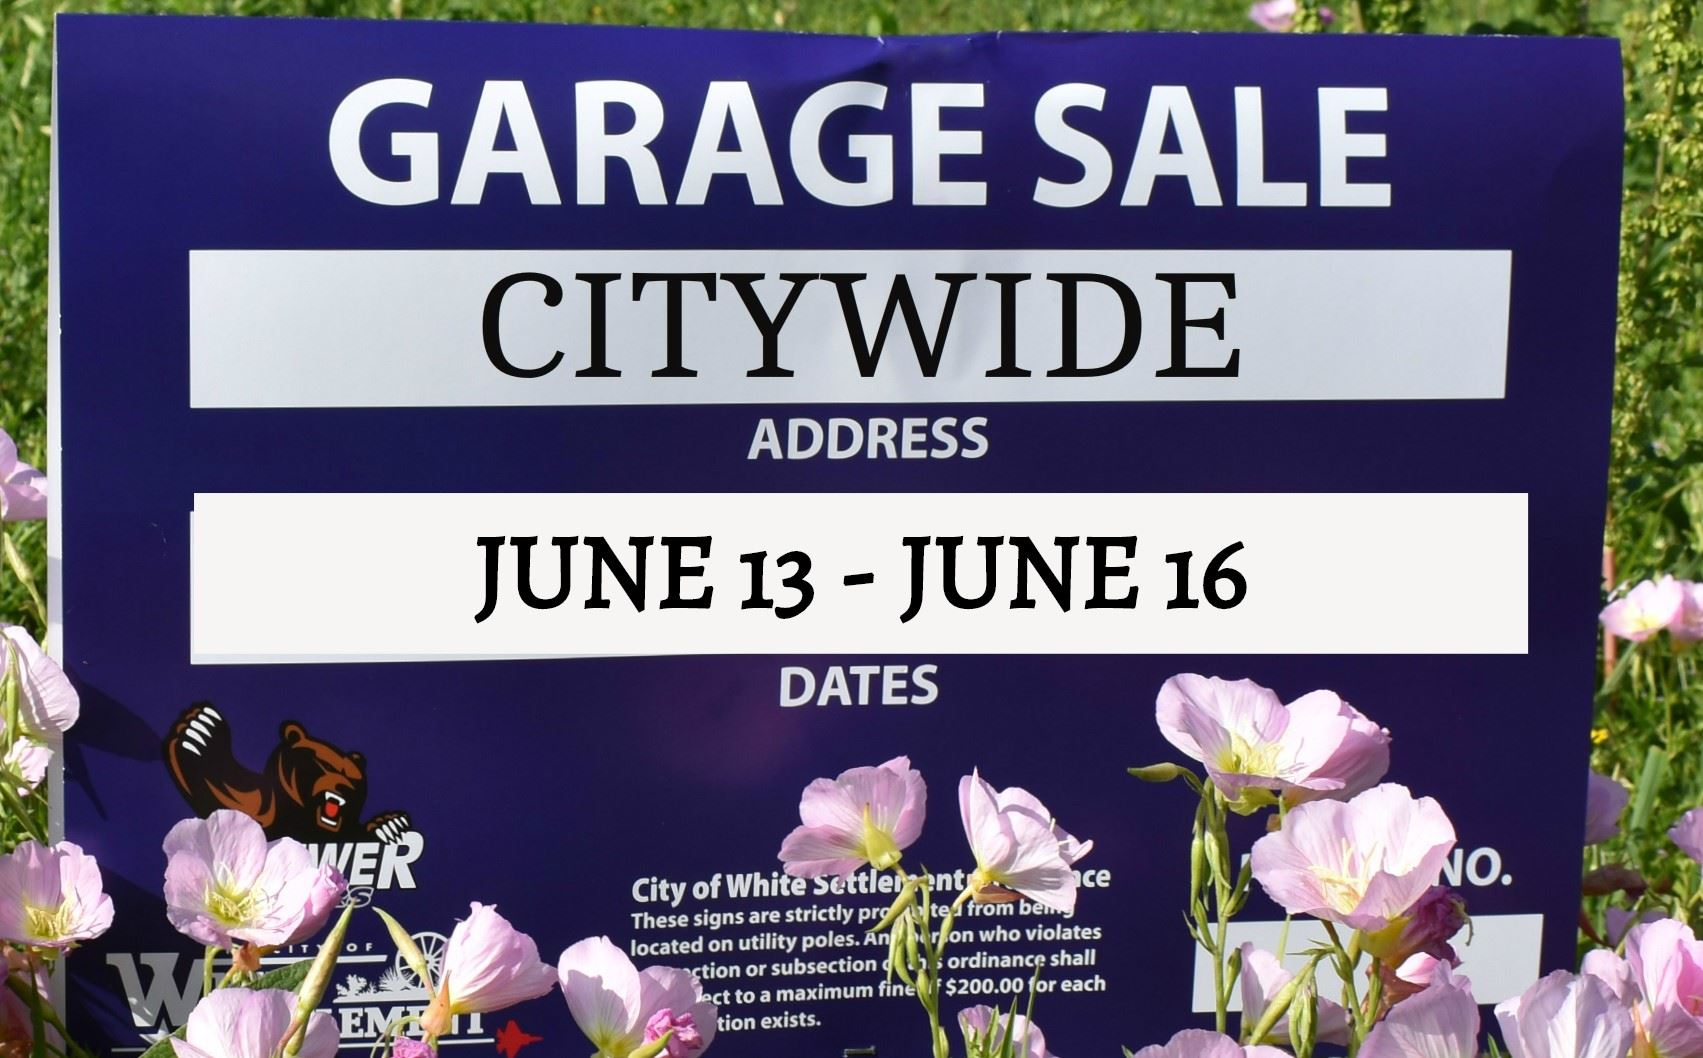 sign advertising a garage sale